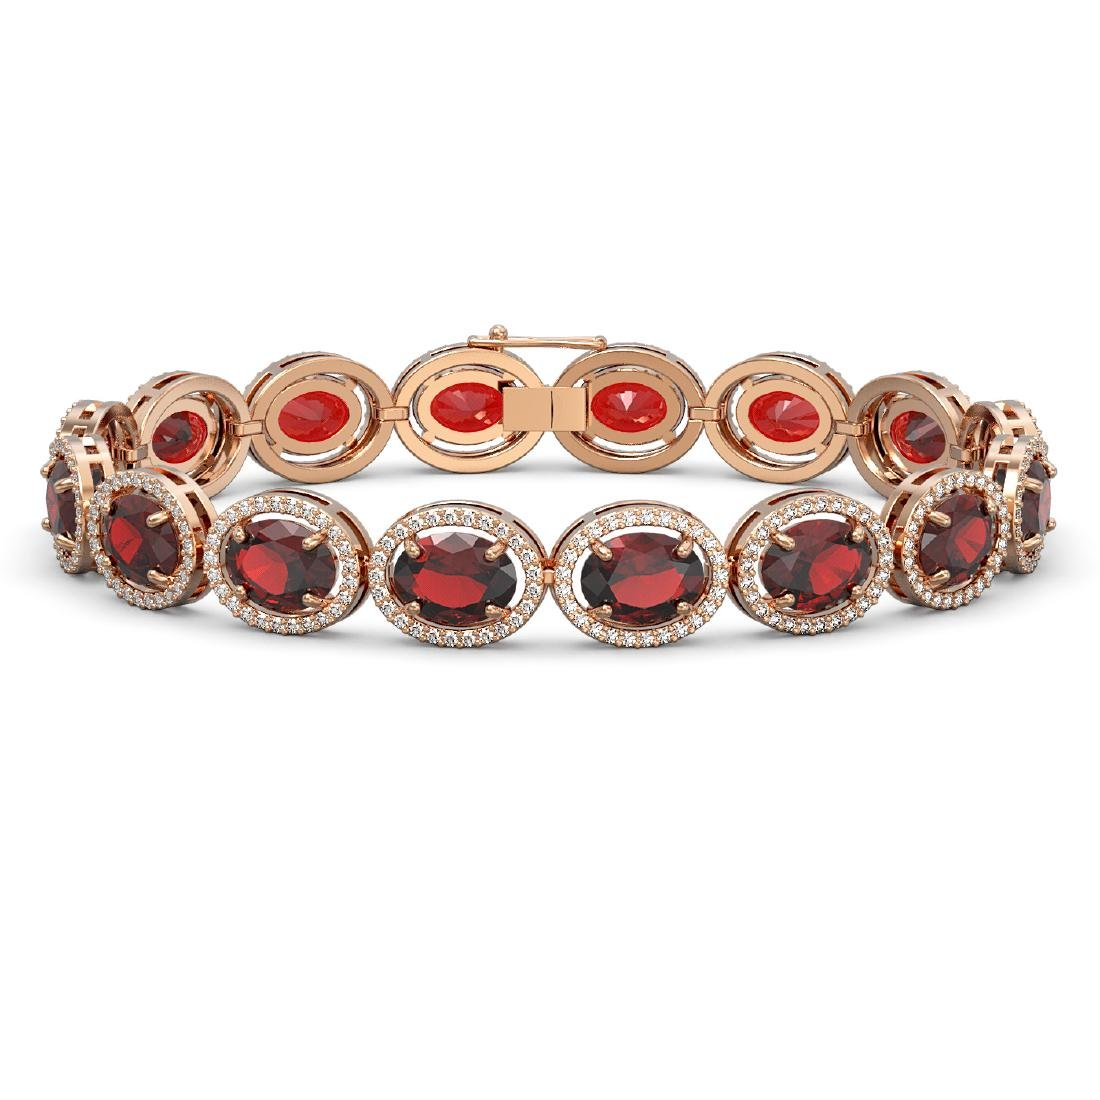 27.28 CTW Garnet & Diamond Halo Bracelet 10K Rose Gold